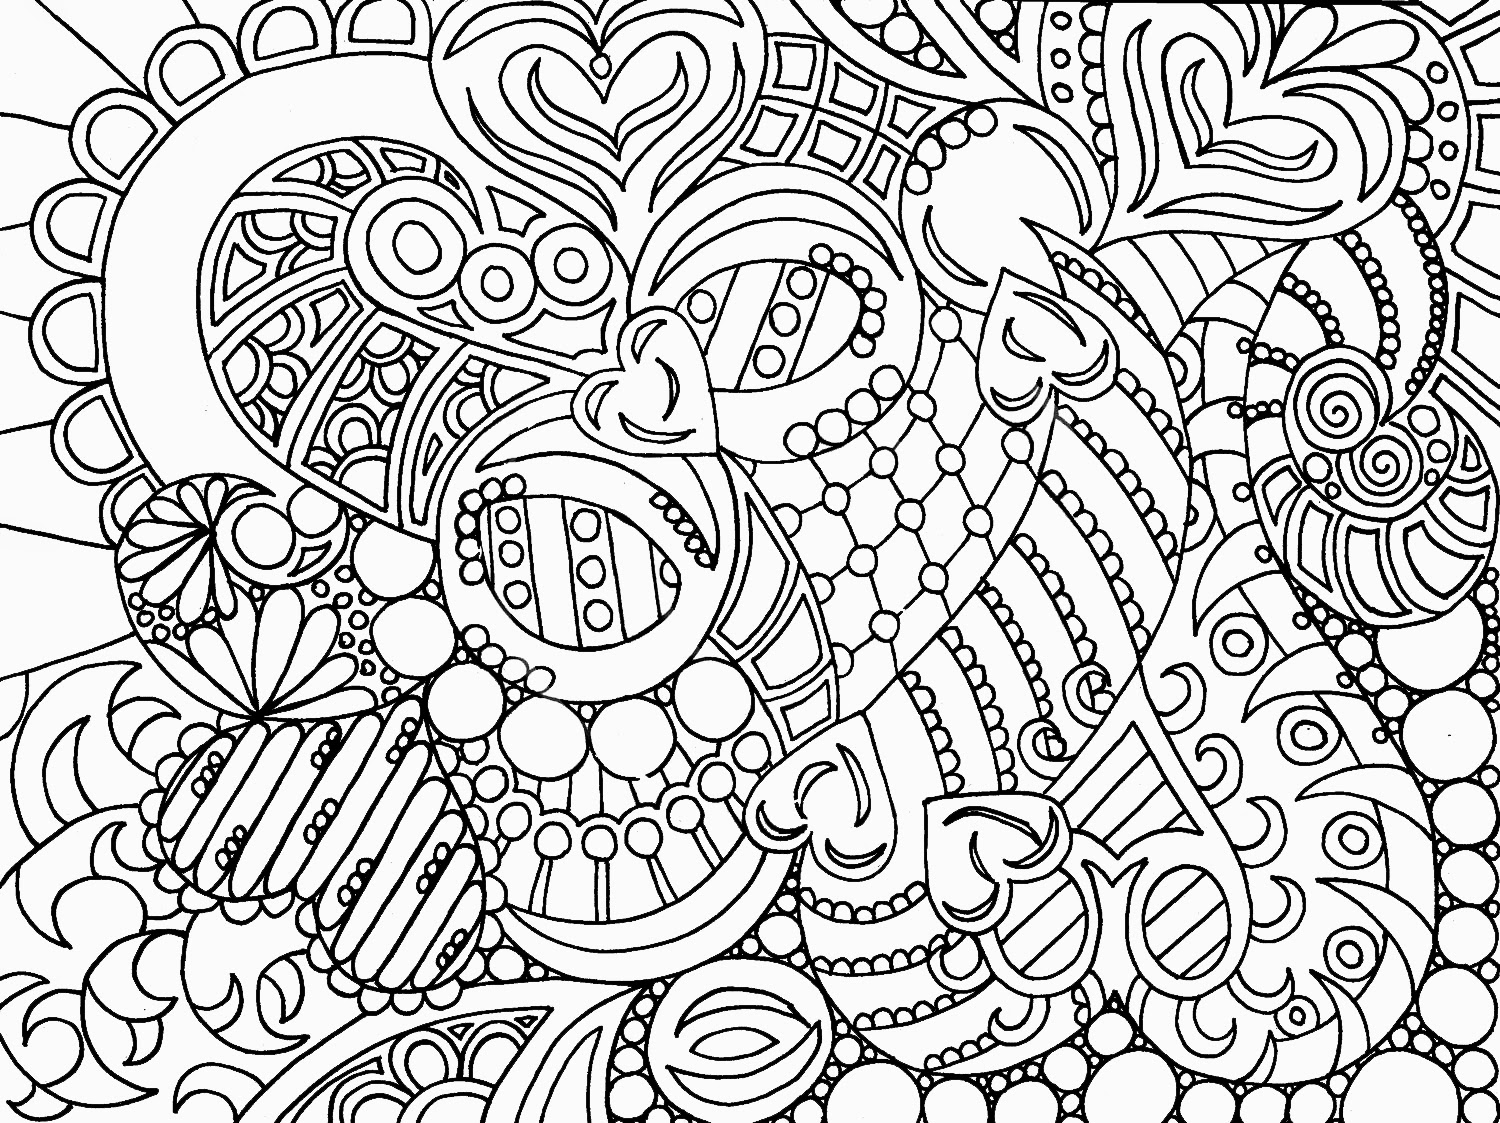 abstract design coloring pages - Printable Design Coloring Pages for Adults